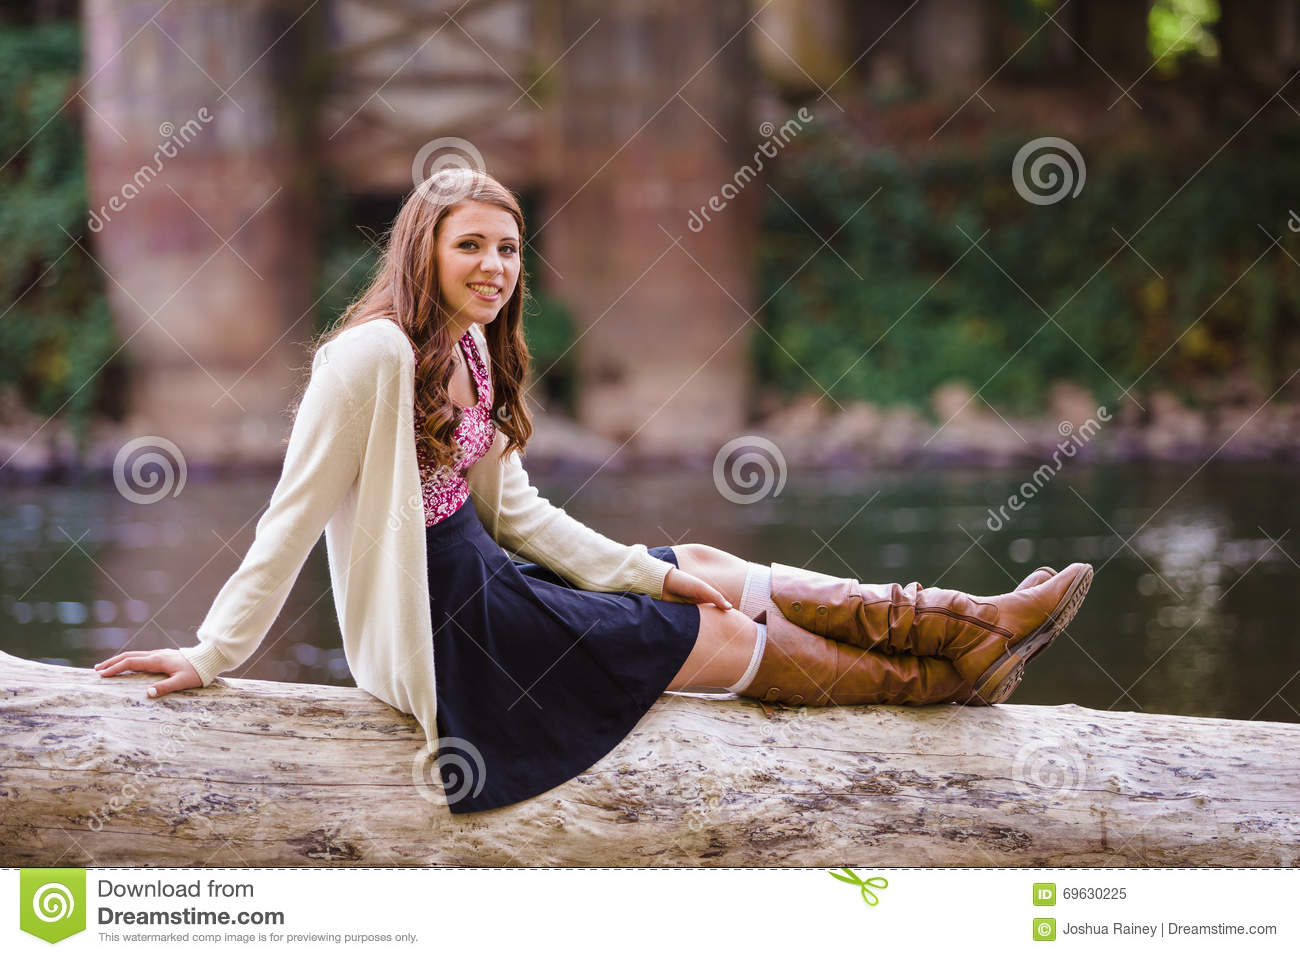 high school senior portrait outdoors stock image image of people